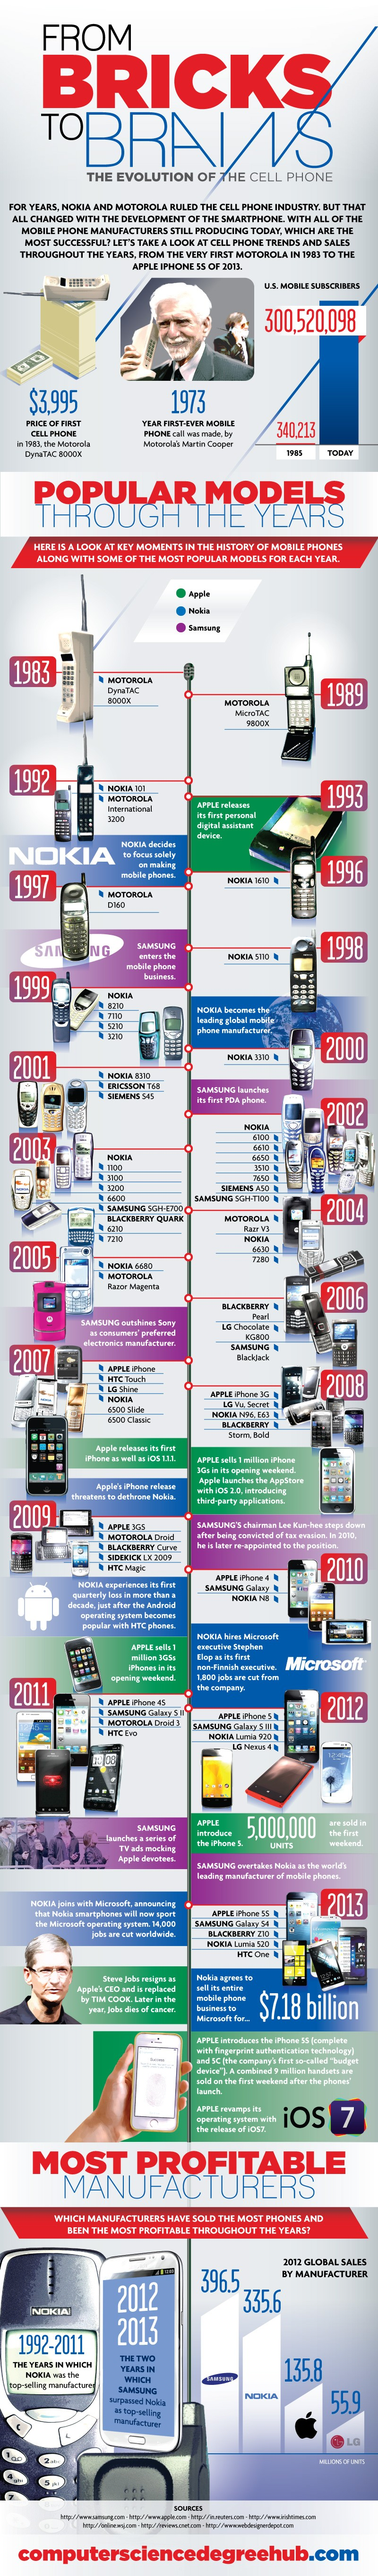 mobile-smartphones-evolution